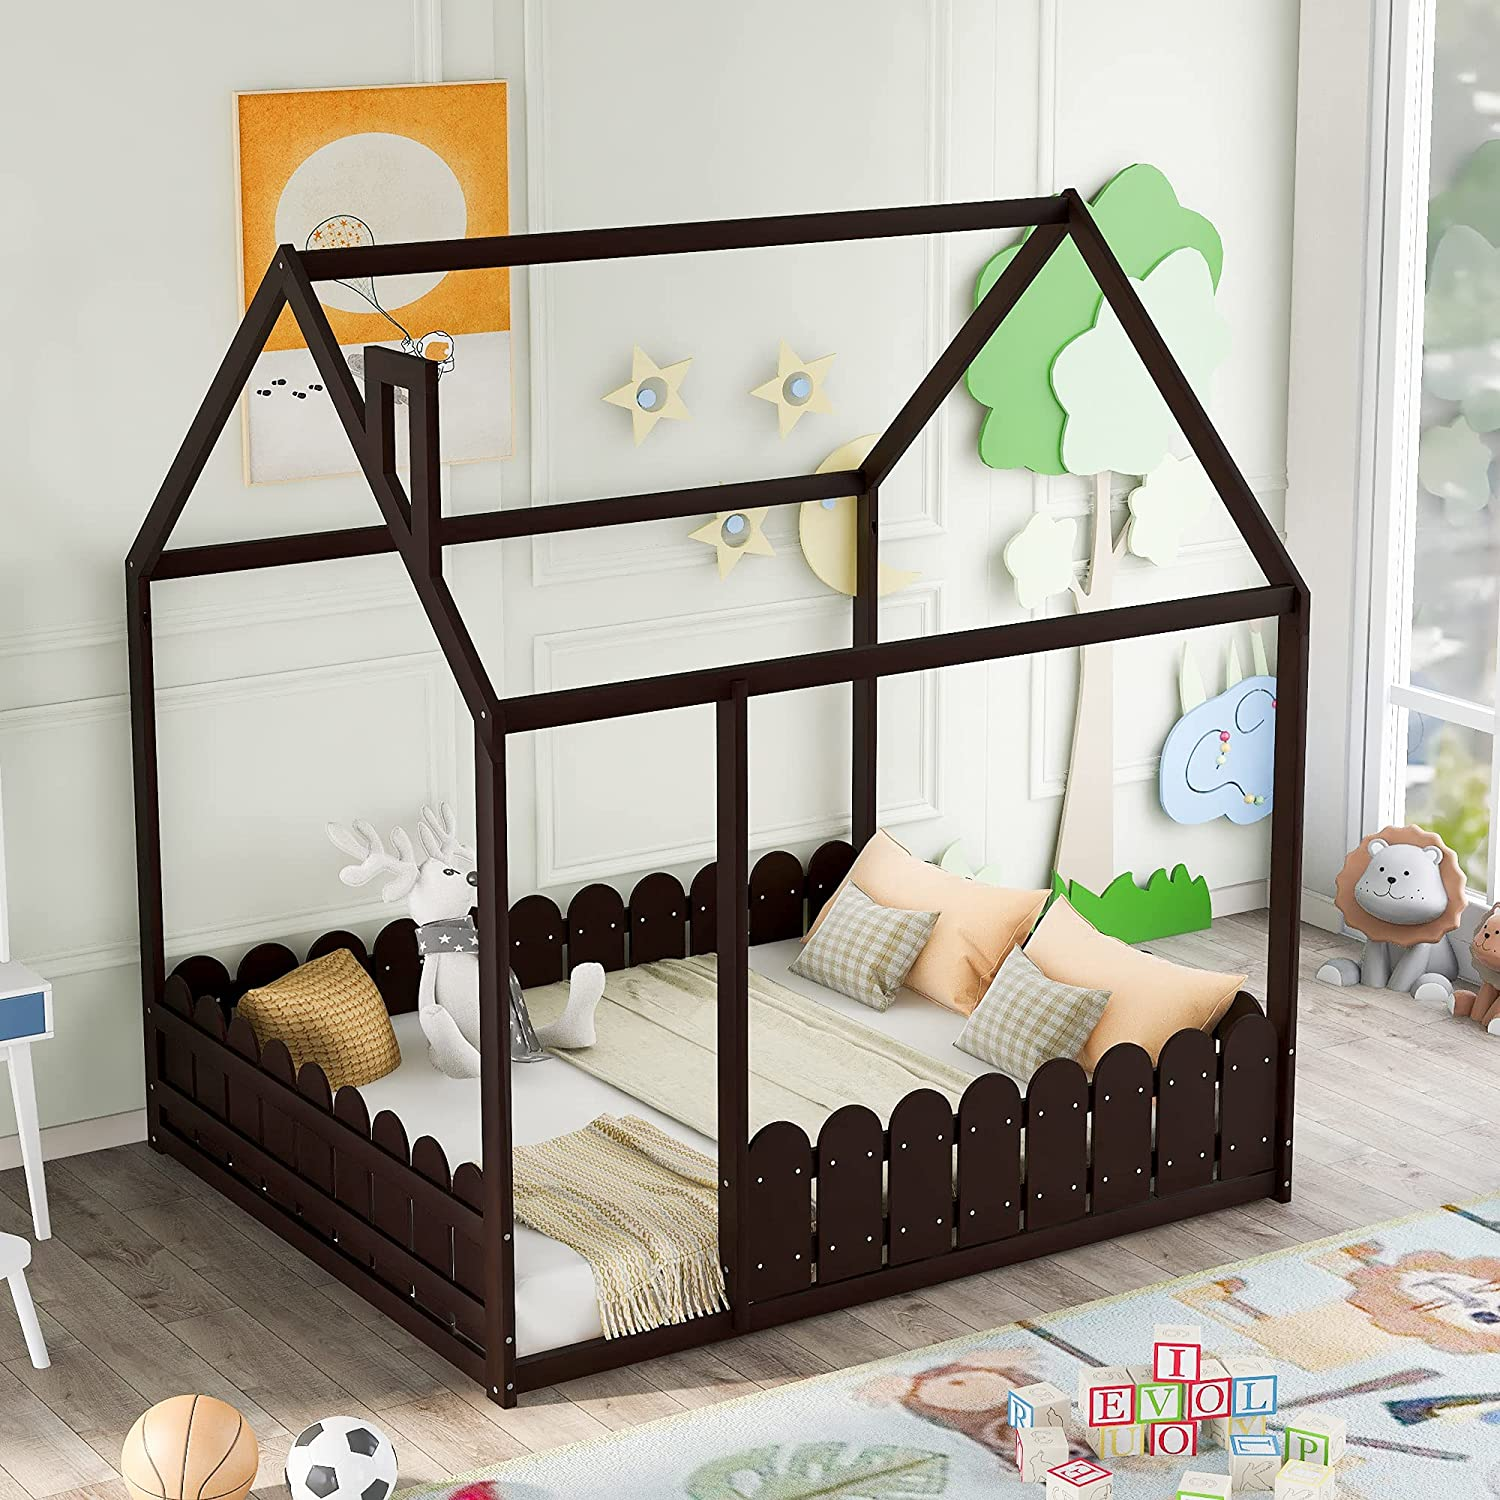 Children's Bed Wooden Soldering House Frame Fence price Full-Size with